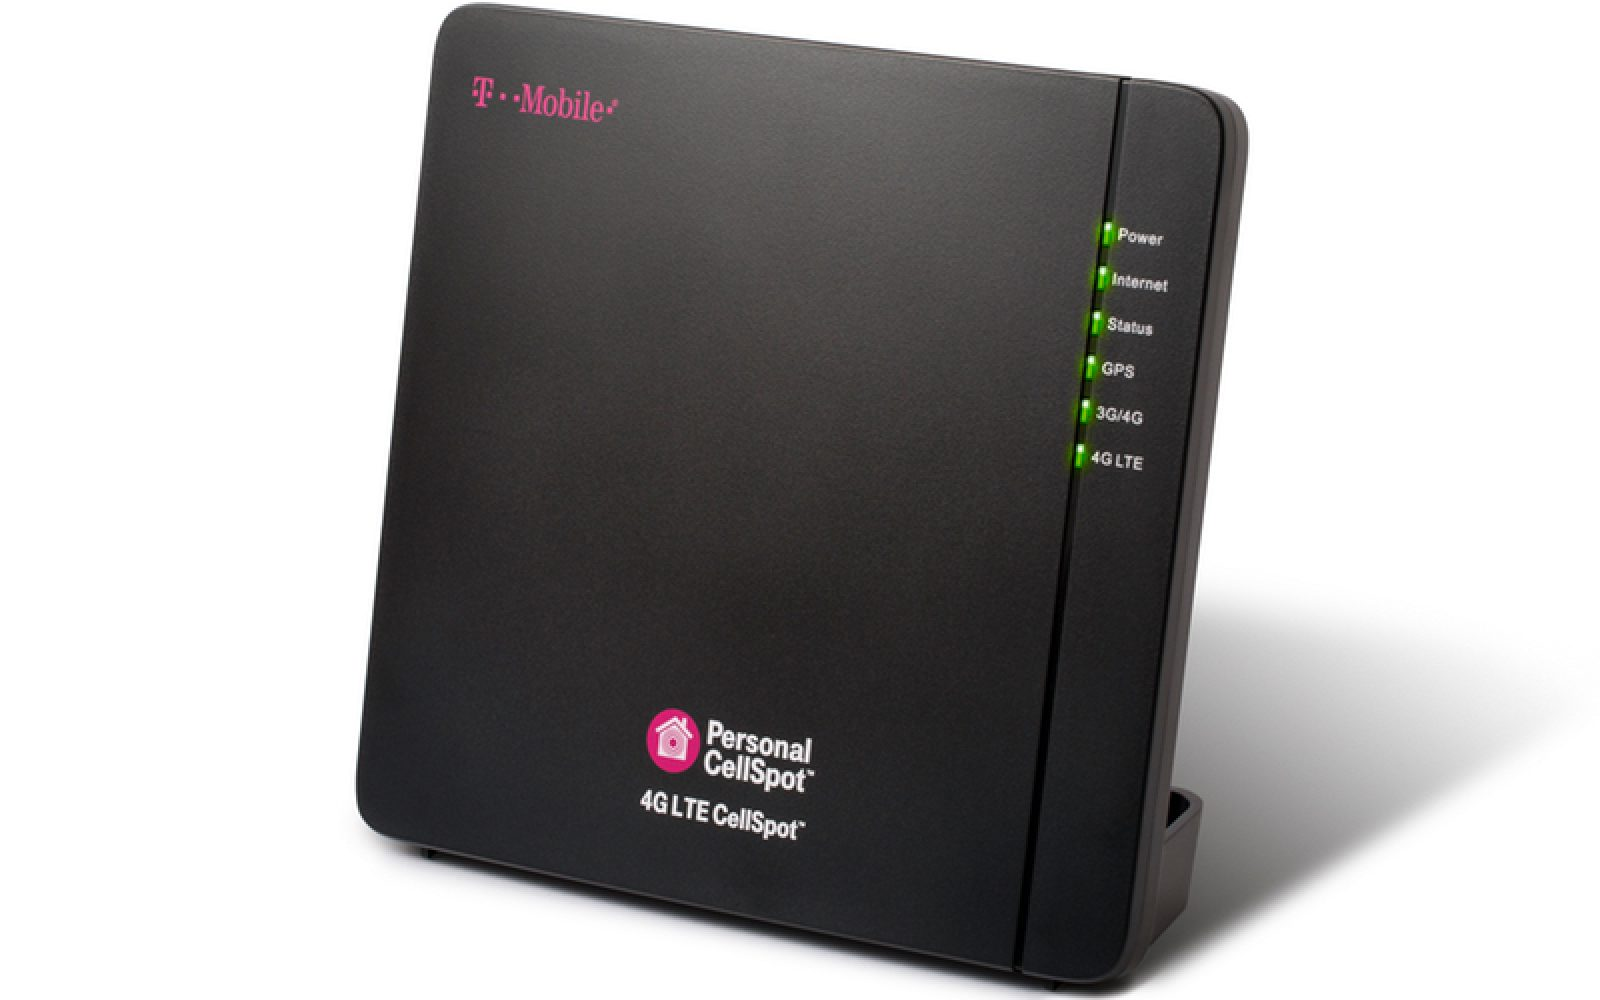 T-Mobile announces new 4G LTE CellSpot, offering LTE signal